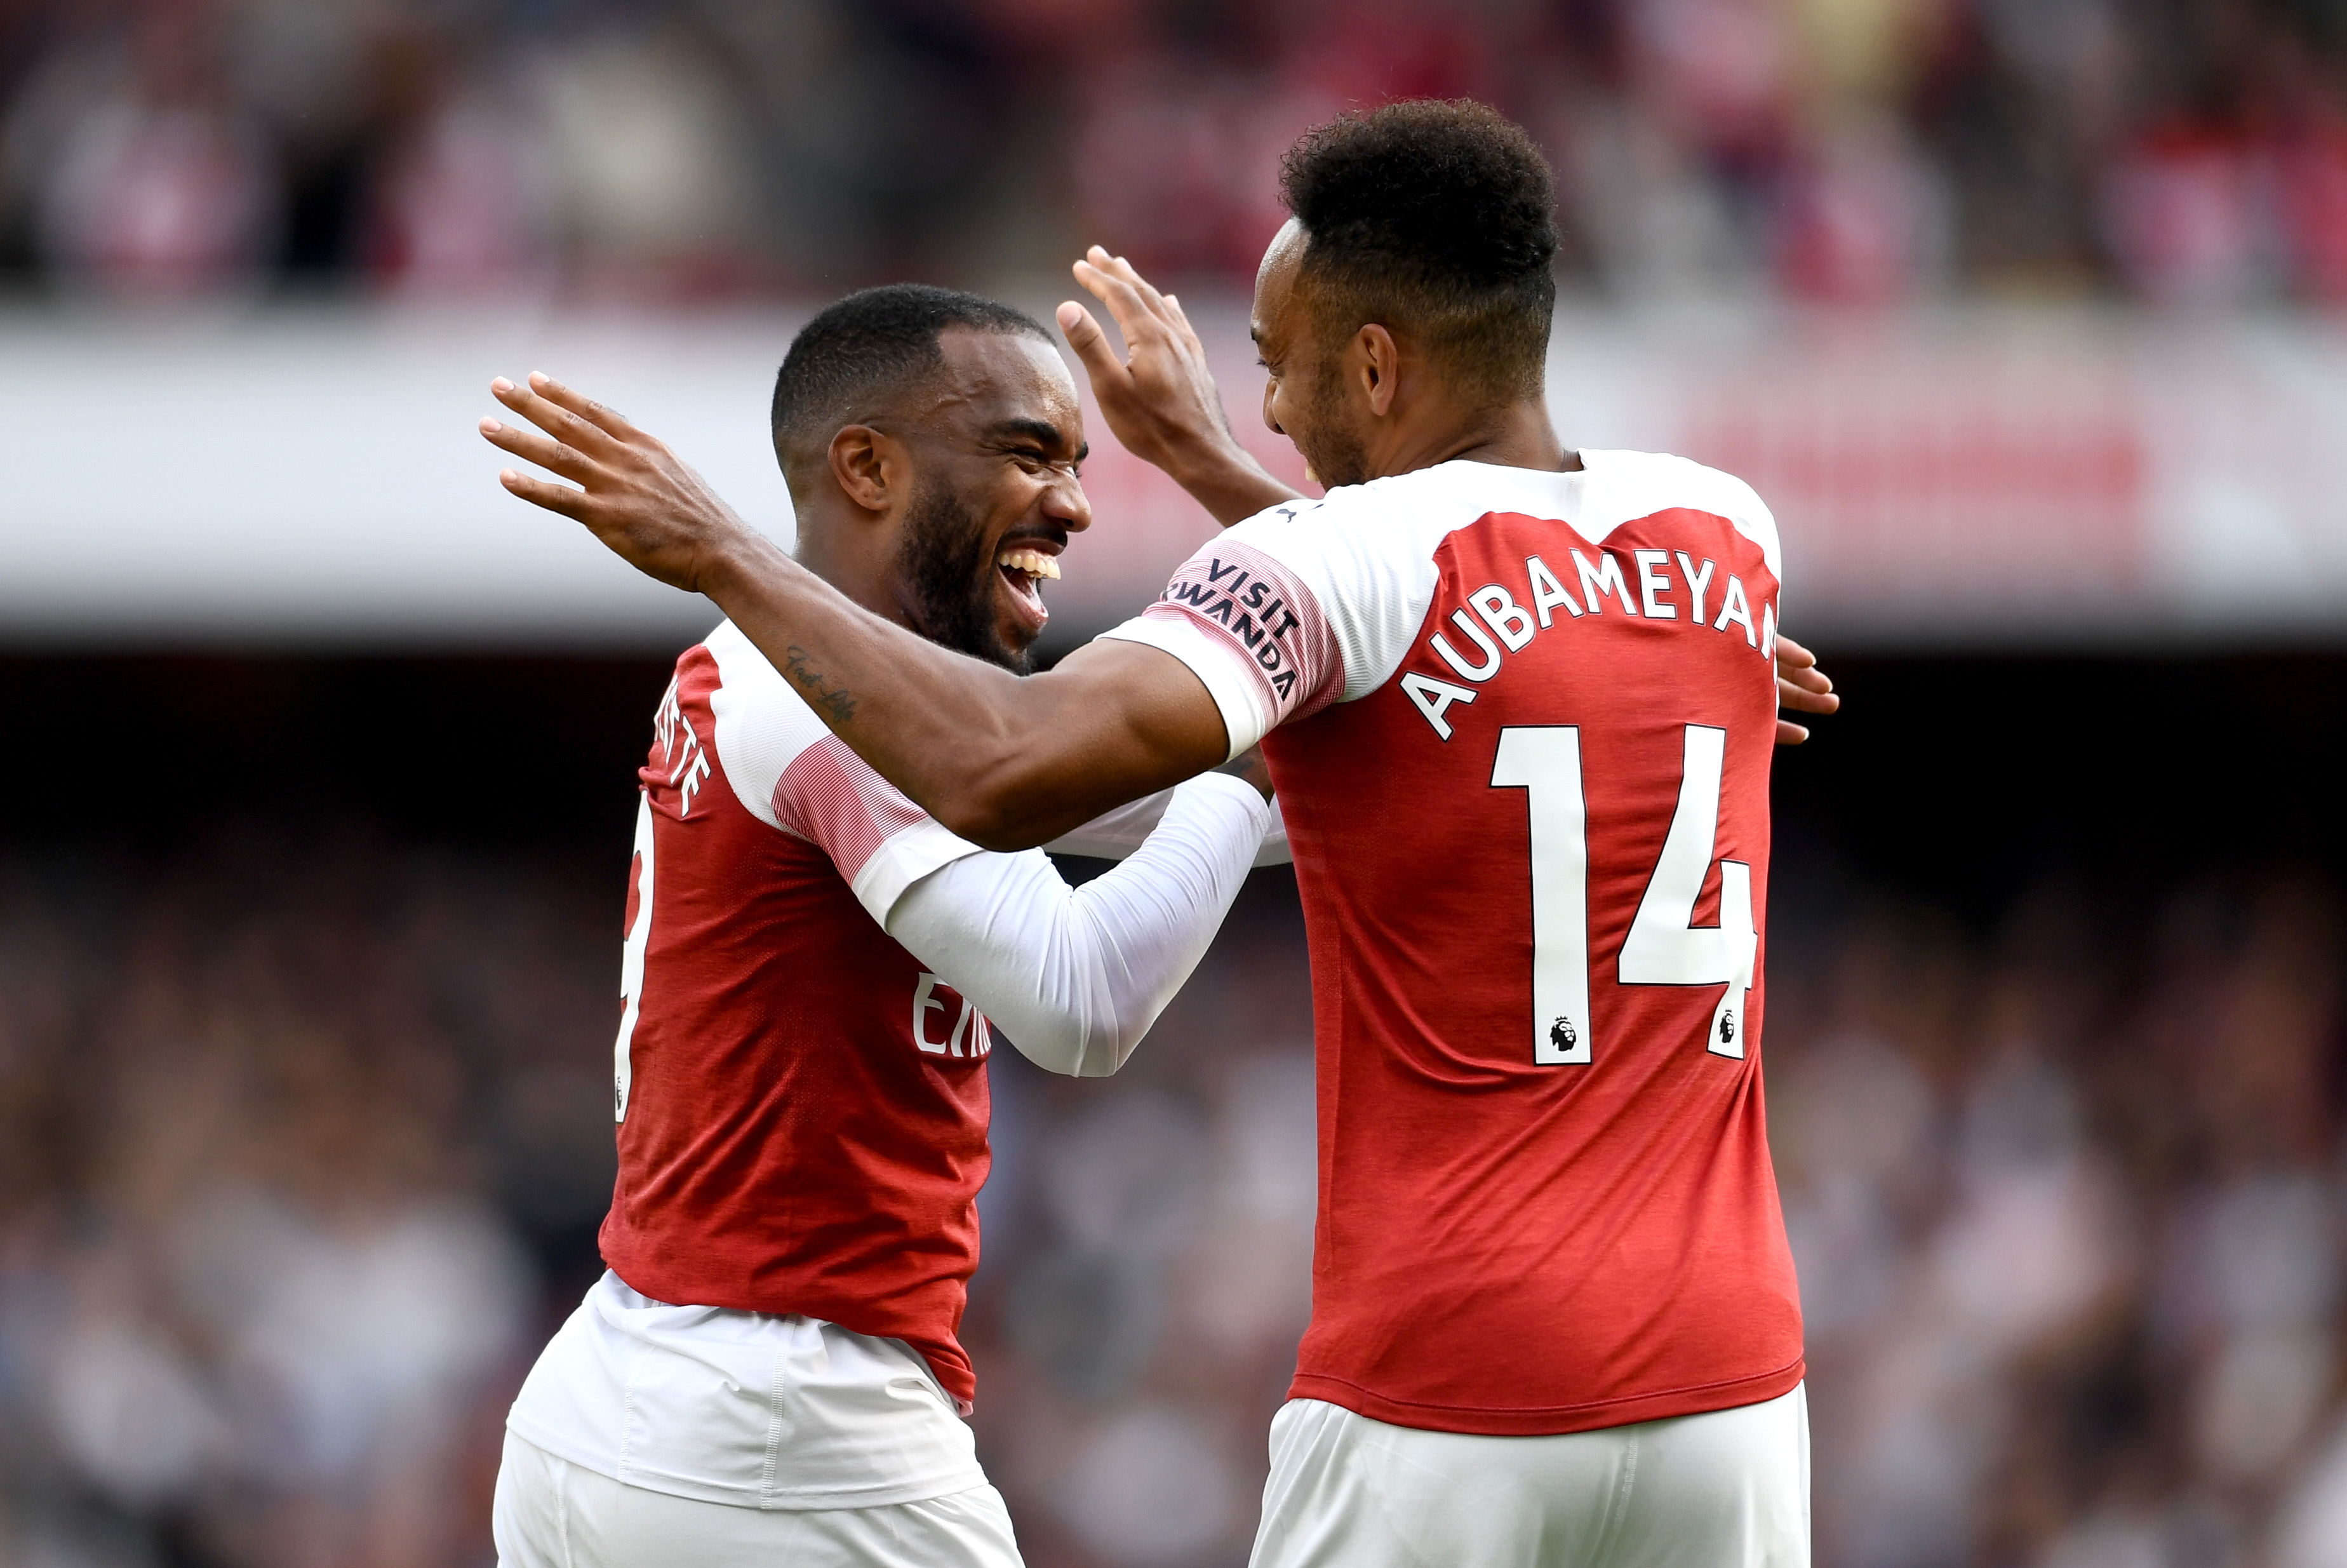 Pierre-Emerik Aubameyang could replace LAcazette in the central striking role against Sporting. (Photo courtesy: AFP/Getty)